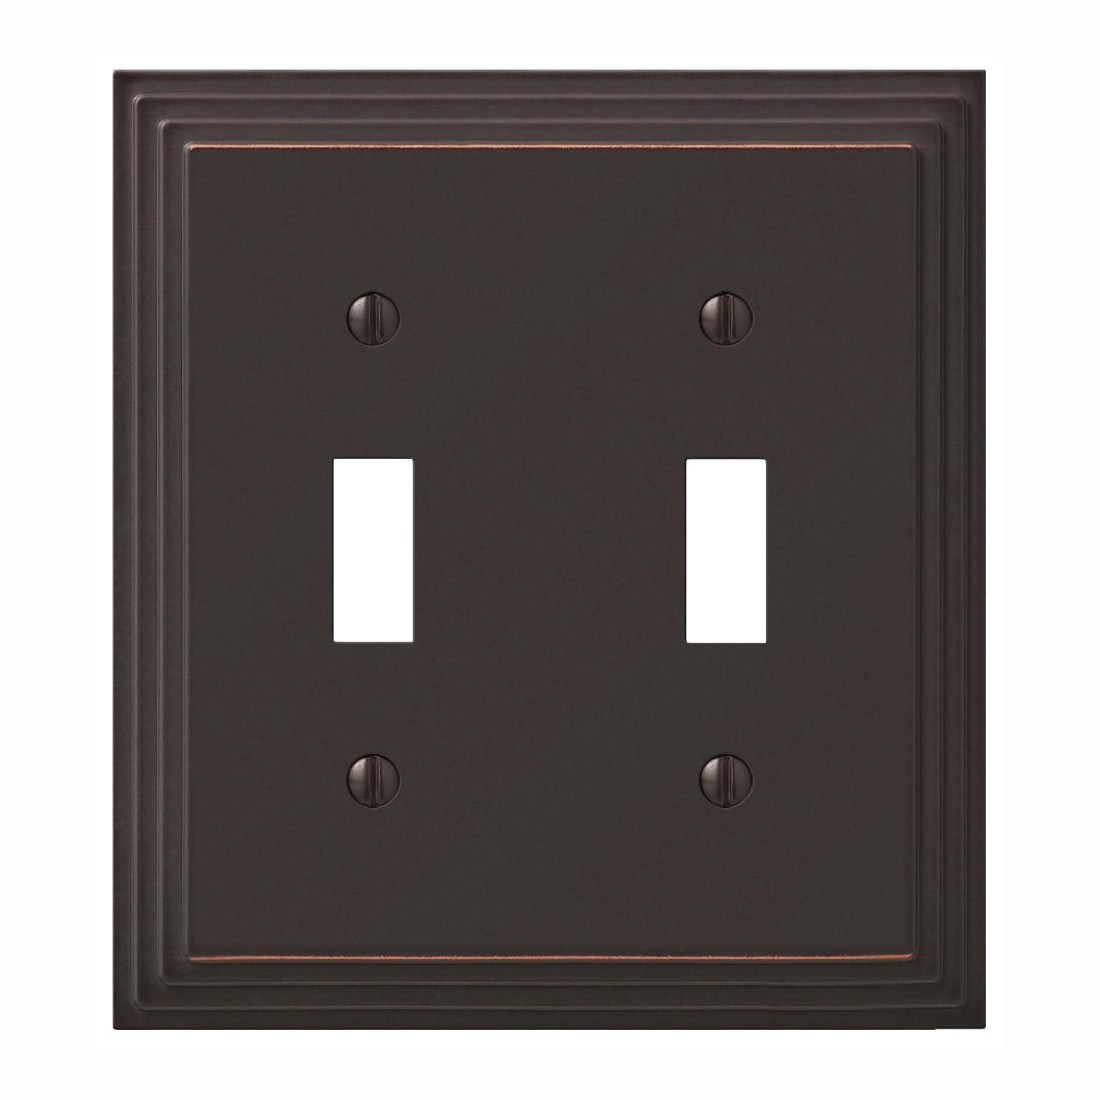 Picture of Amerelle 84TTVB Wallplate, 4-15/16 in L, 4-1/2 in W, 2-Gang, Cast Metal, Aged Bronze